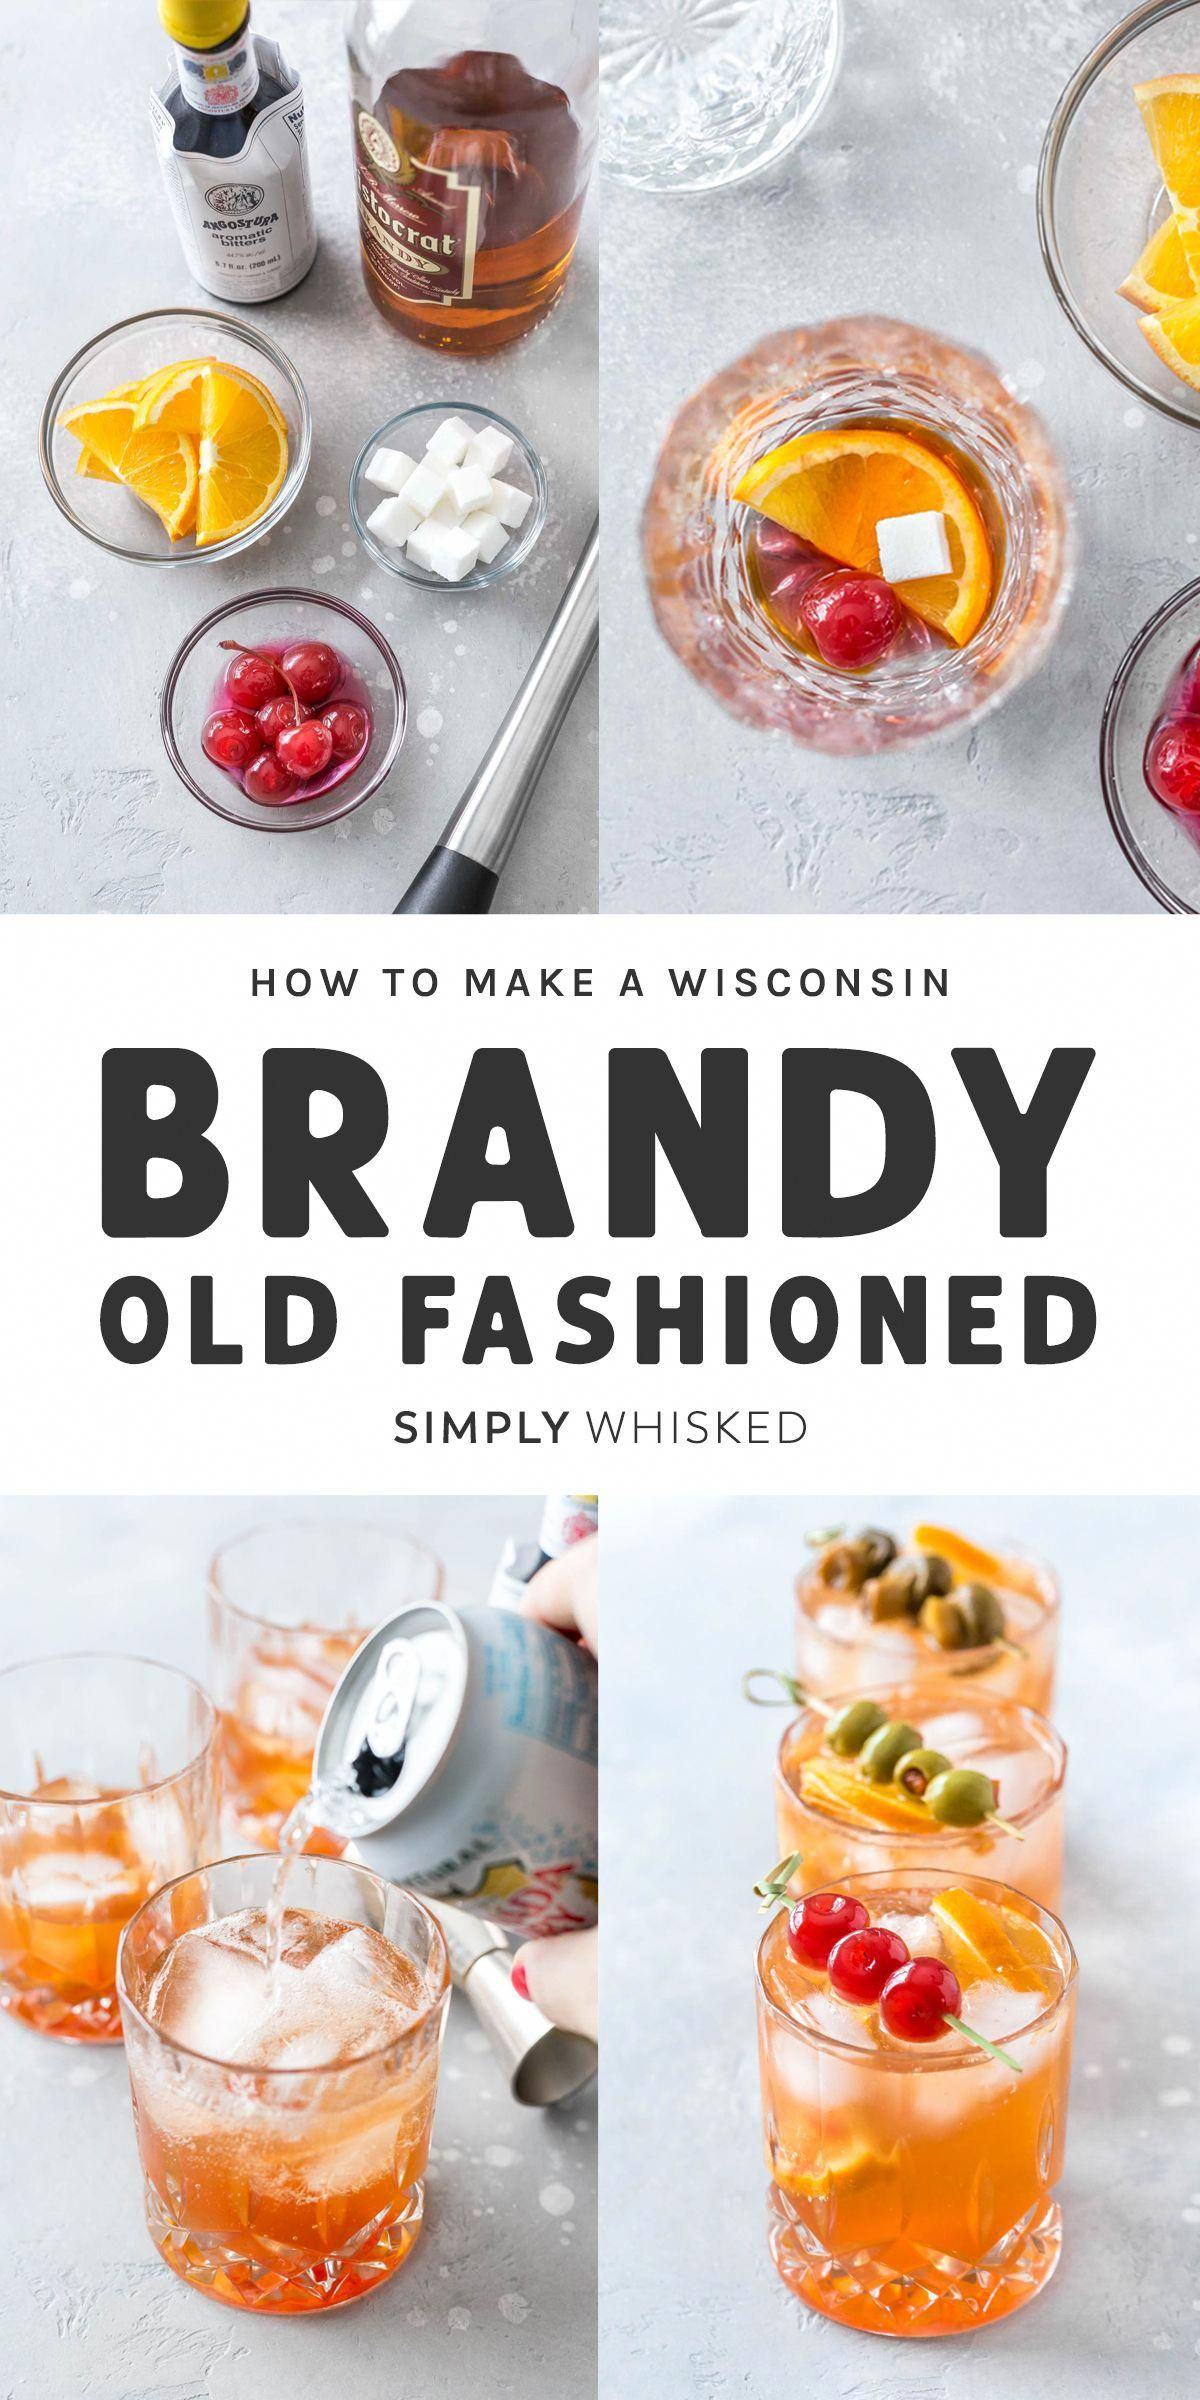 Skip the supper club and make this classic cocktail at home. This Wisconsin brandy old fashioned recipe can be made sweet or sour. Swap whiskey if you want, just don't forget the cherries. #oldfashioned #brandy #partycocktailrecipes